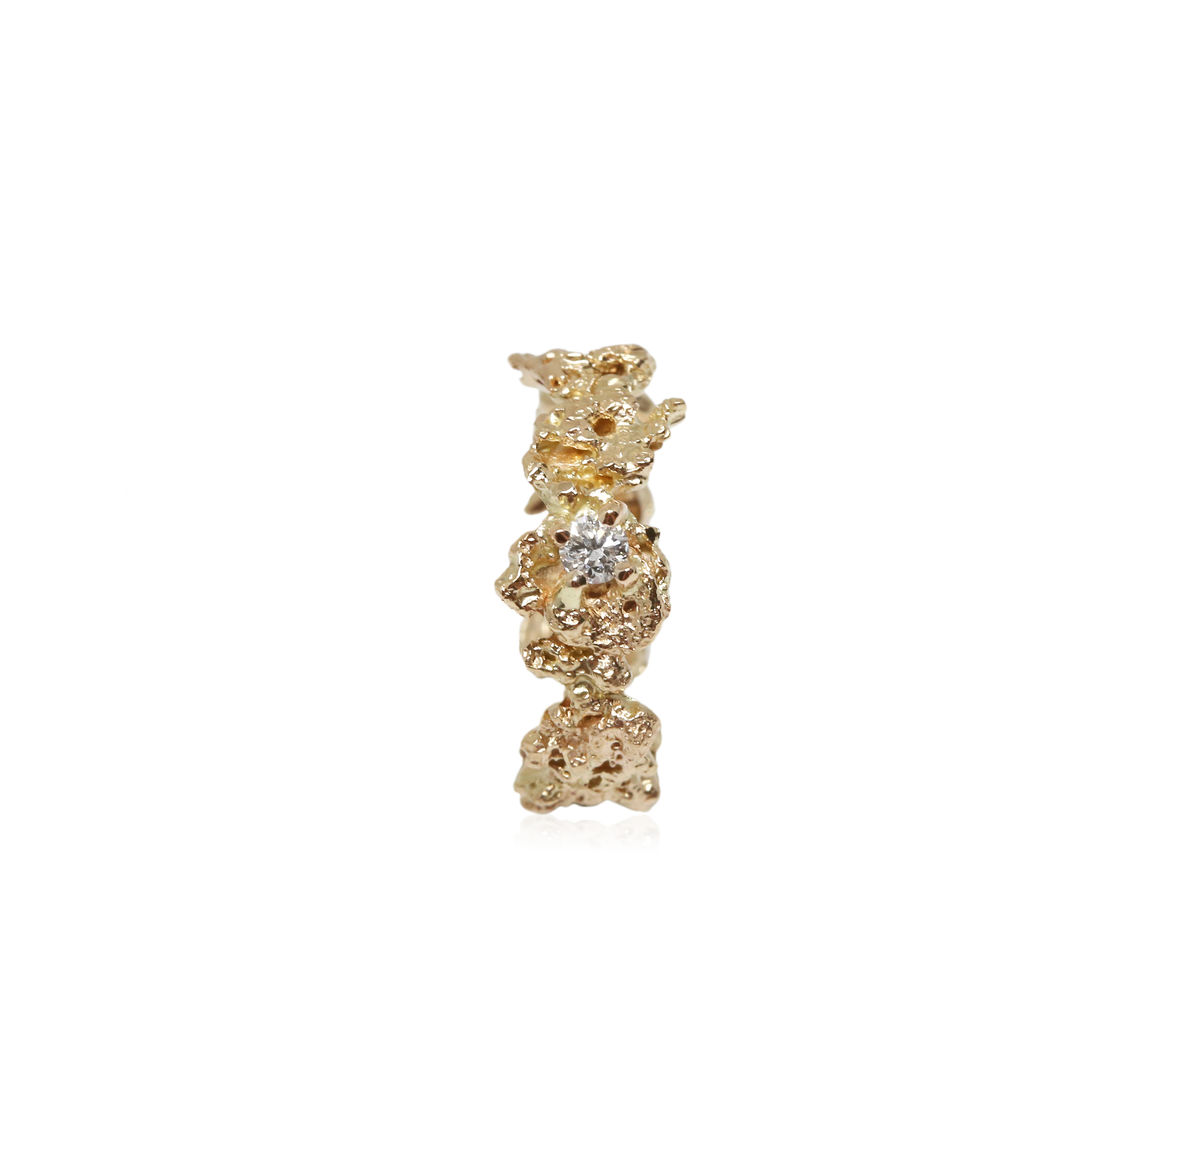 Out of the Sea Ring in 14k gold with 0,11 carat diamond - product images  of